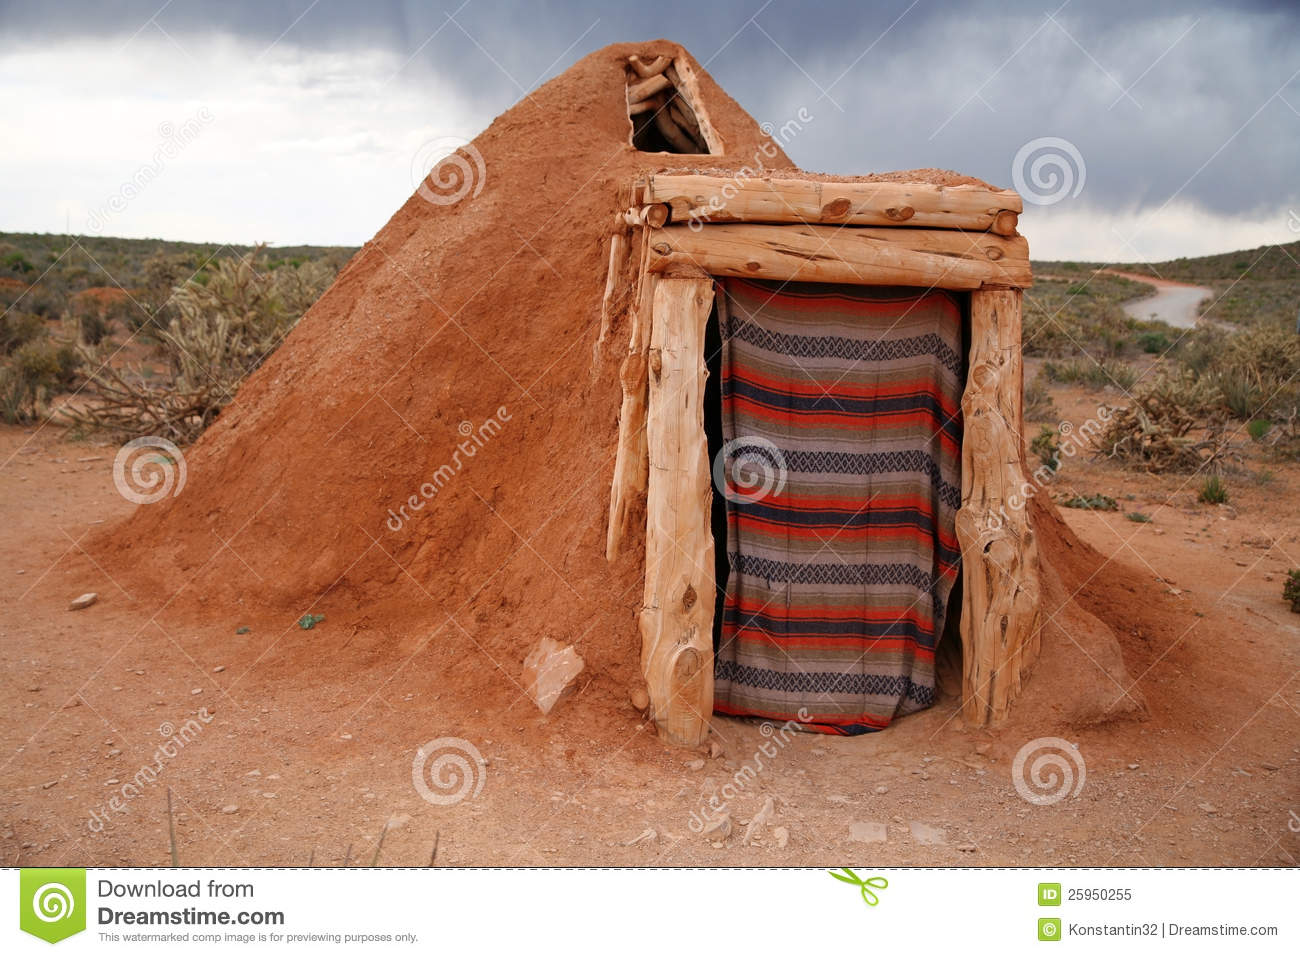 Royalty Free Stock Photo Navajo Native Indian House Image25950255 together with 69 likewise Make A Garden Work Table From A Pallet also Irelands First Shipping Container Home Built In 3 Days Houses Homeless People further Quonset Hut Homes Photos. on yurt design plans